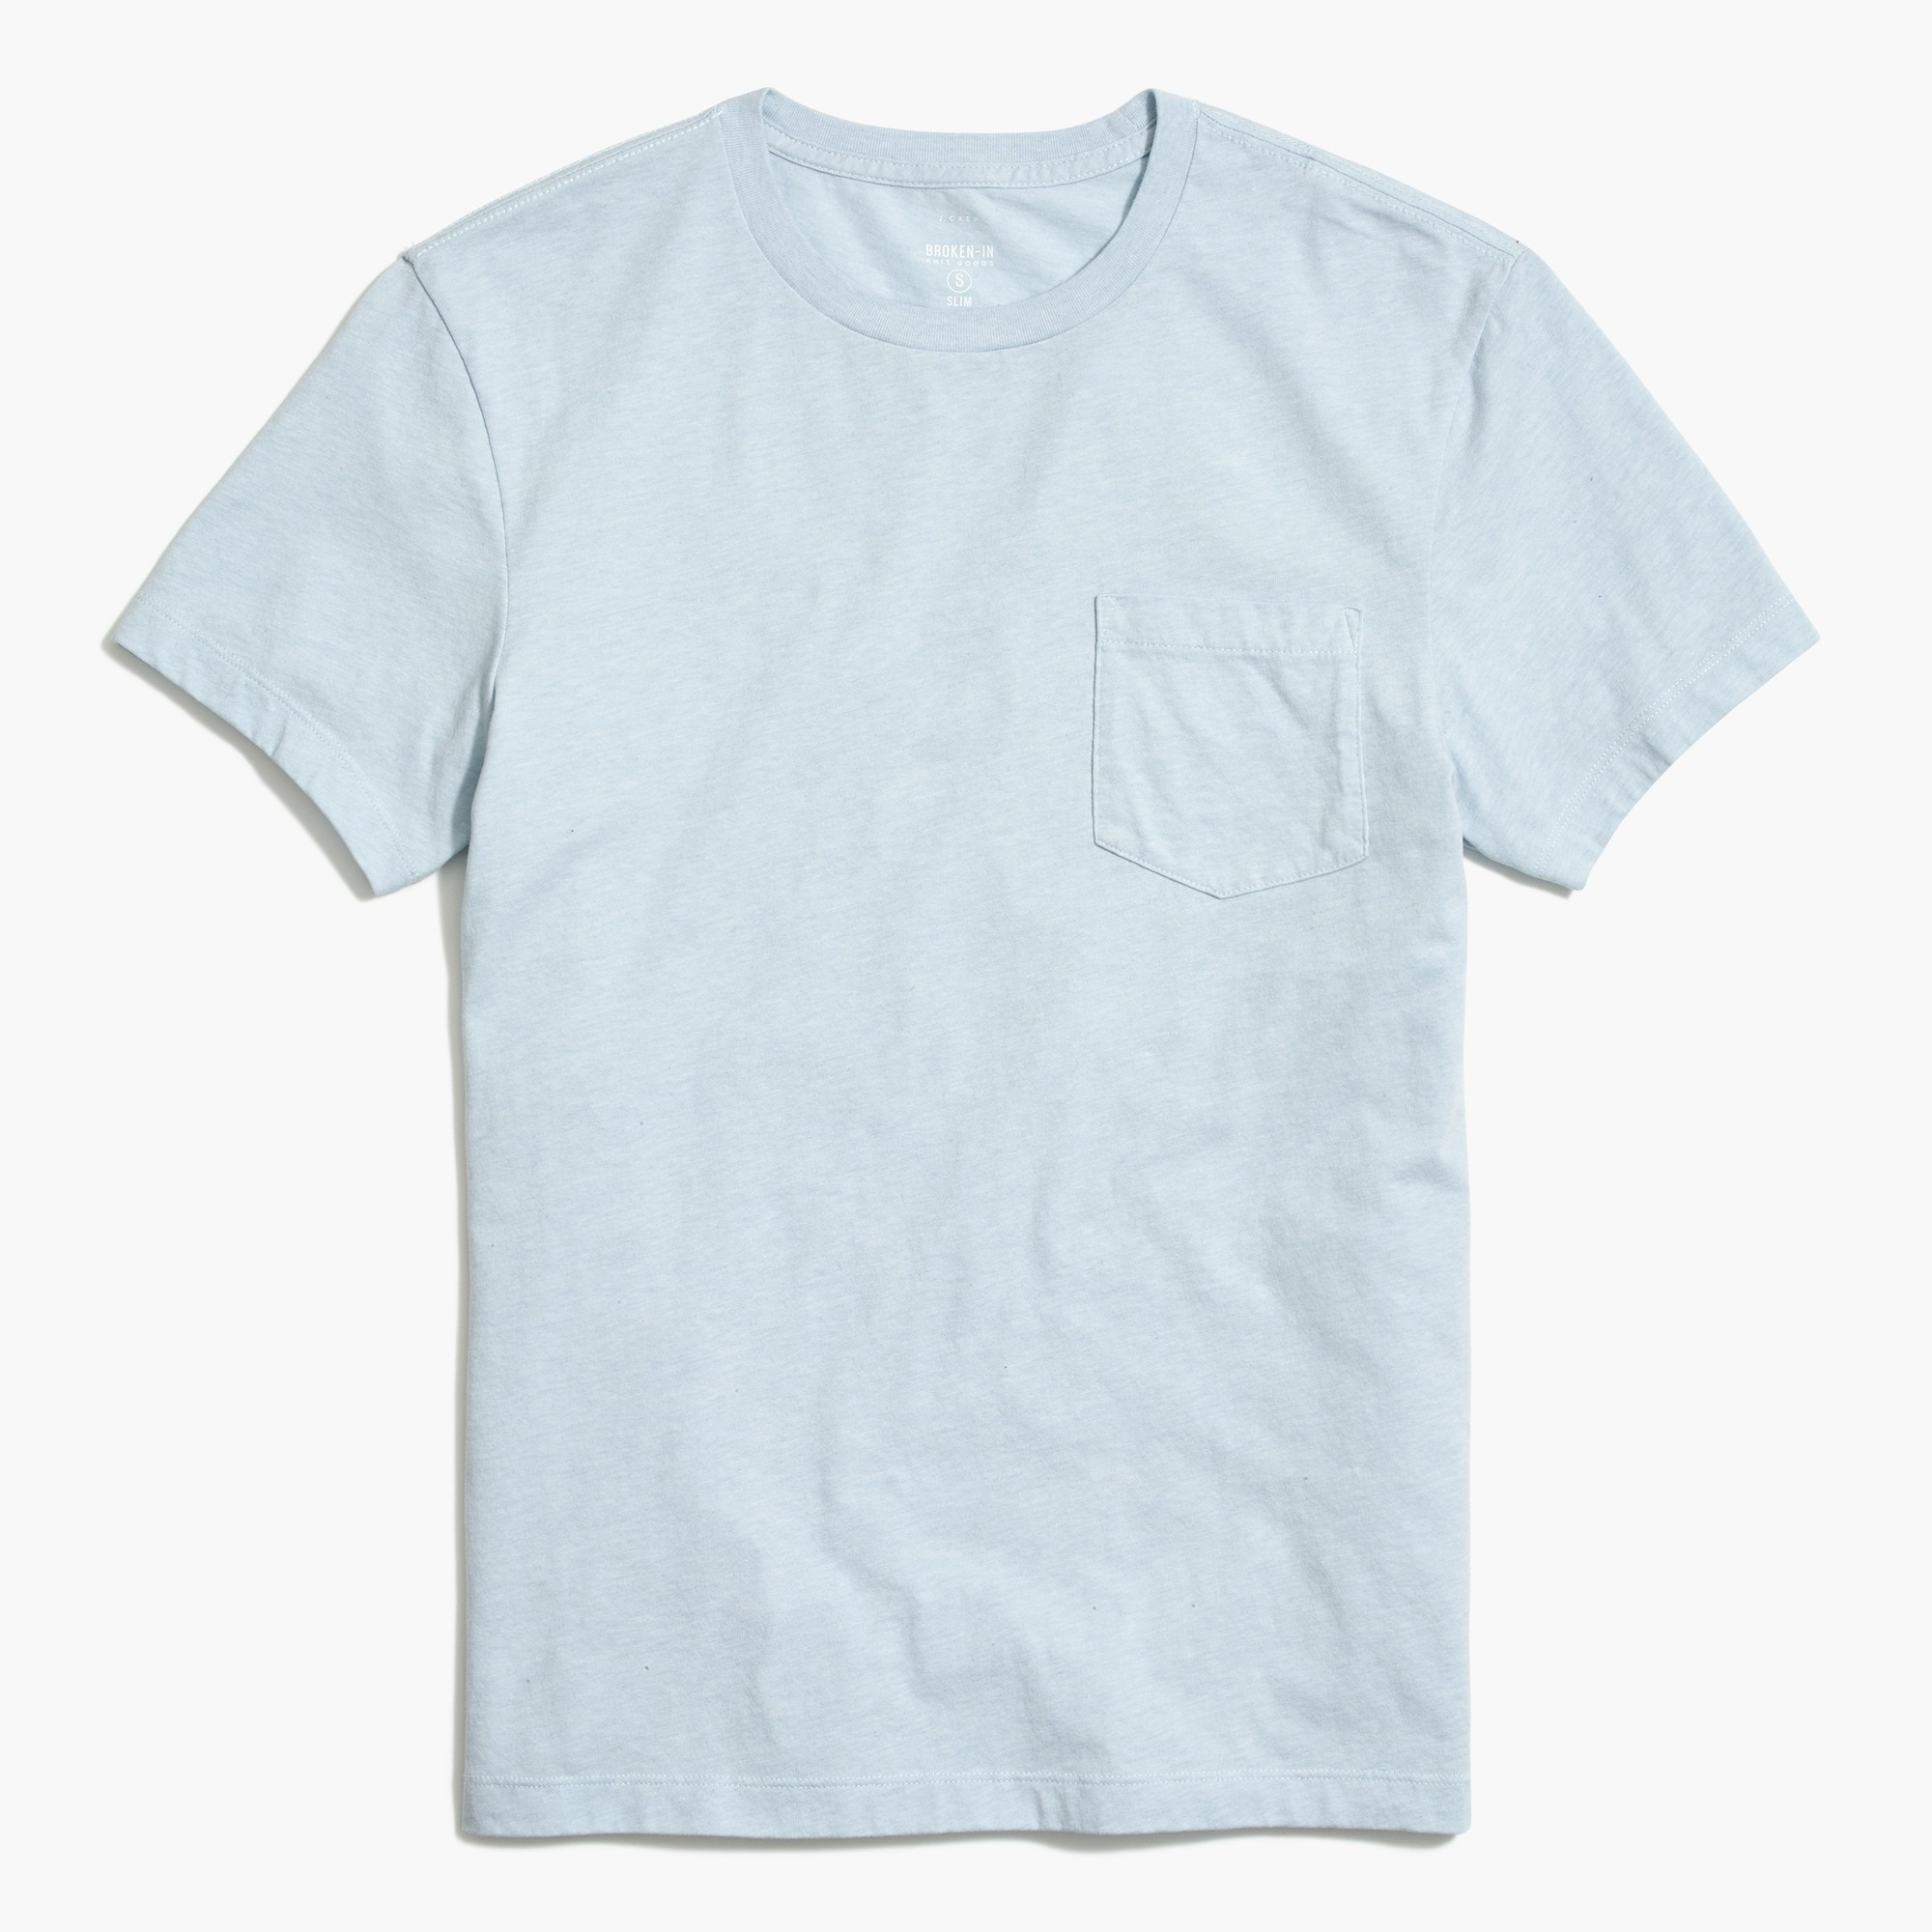 Image 2 for Slim heathered washed pocket T-shirt